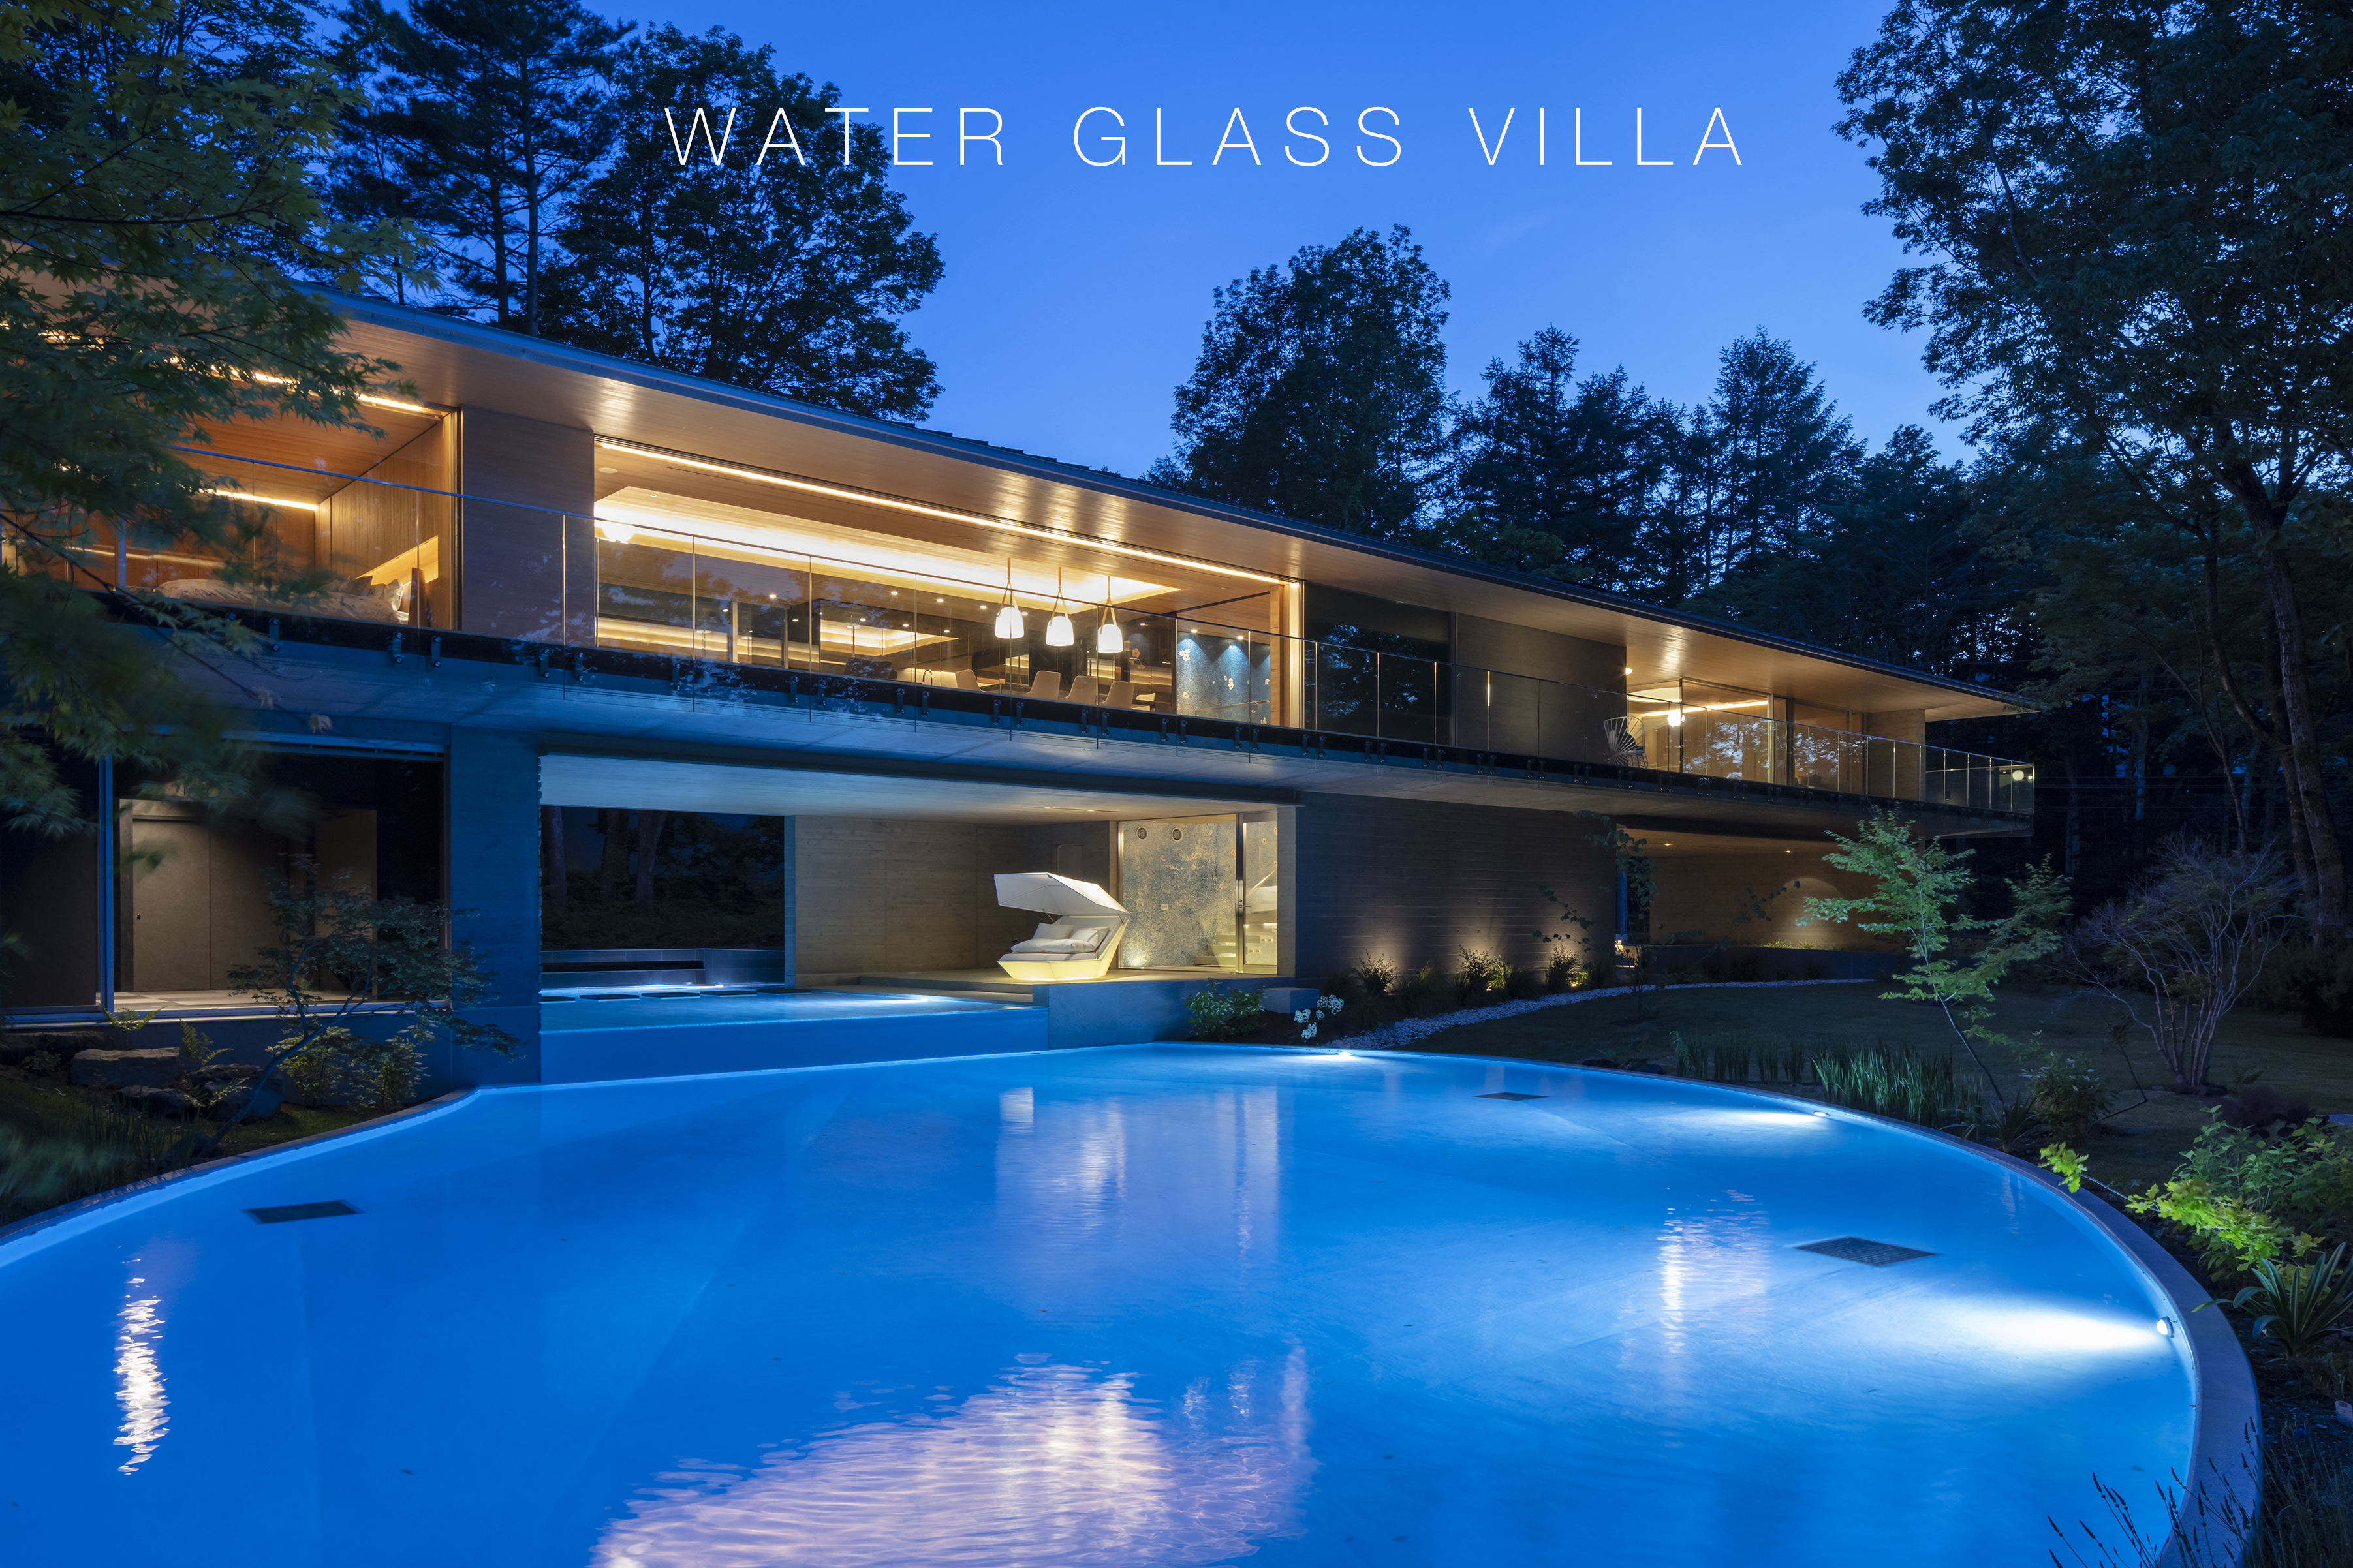 WATER GLASS VILLA